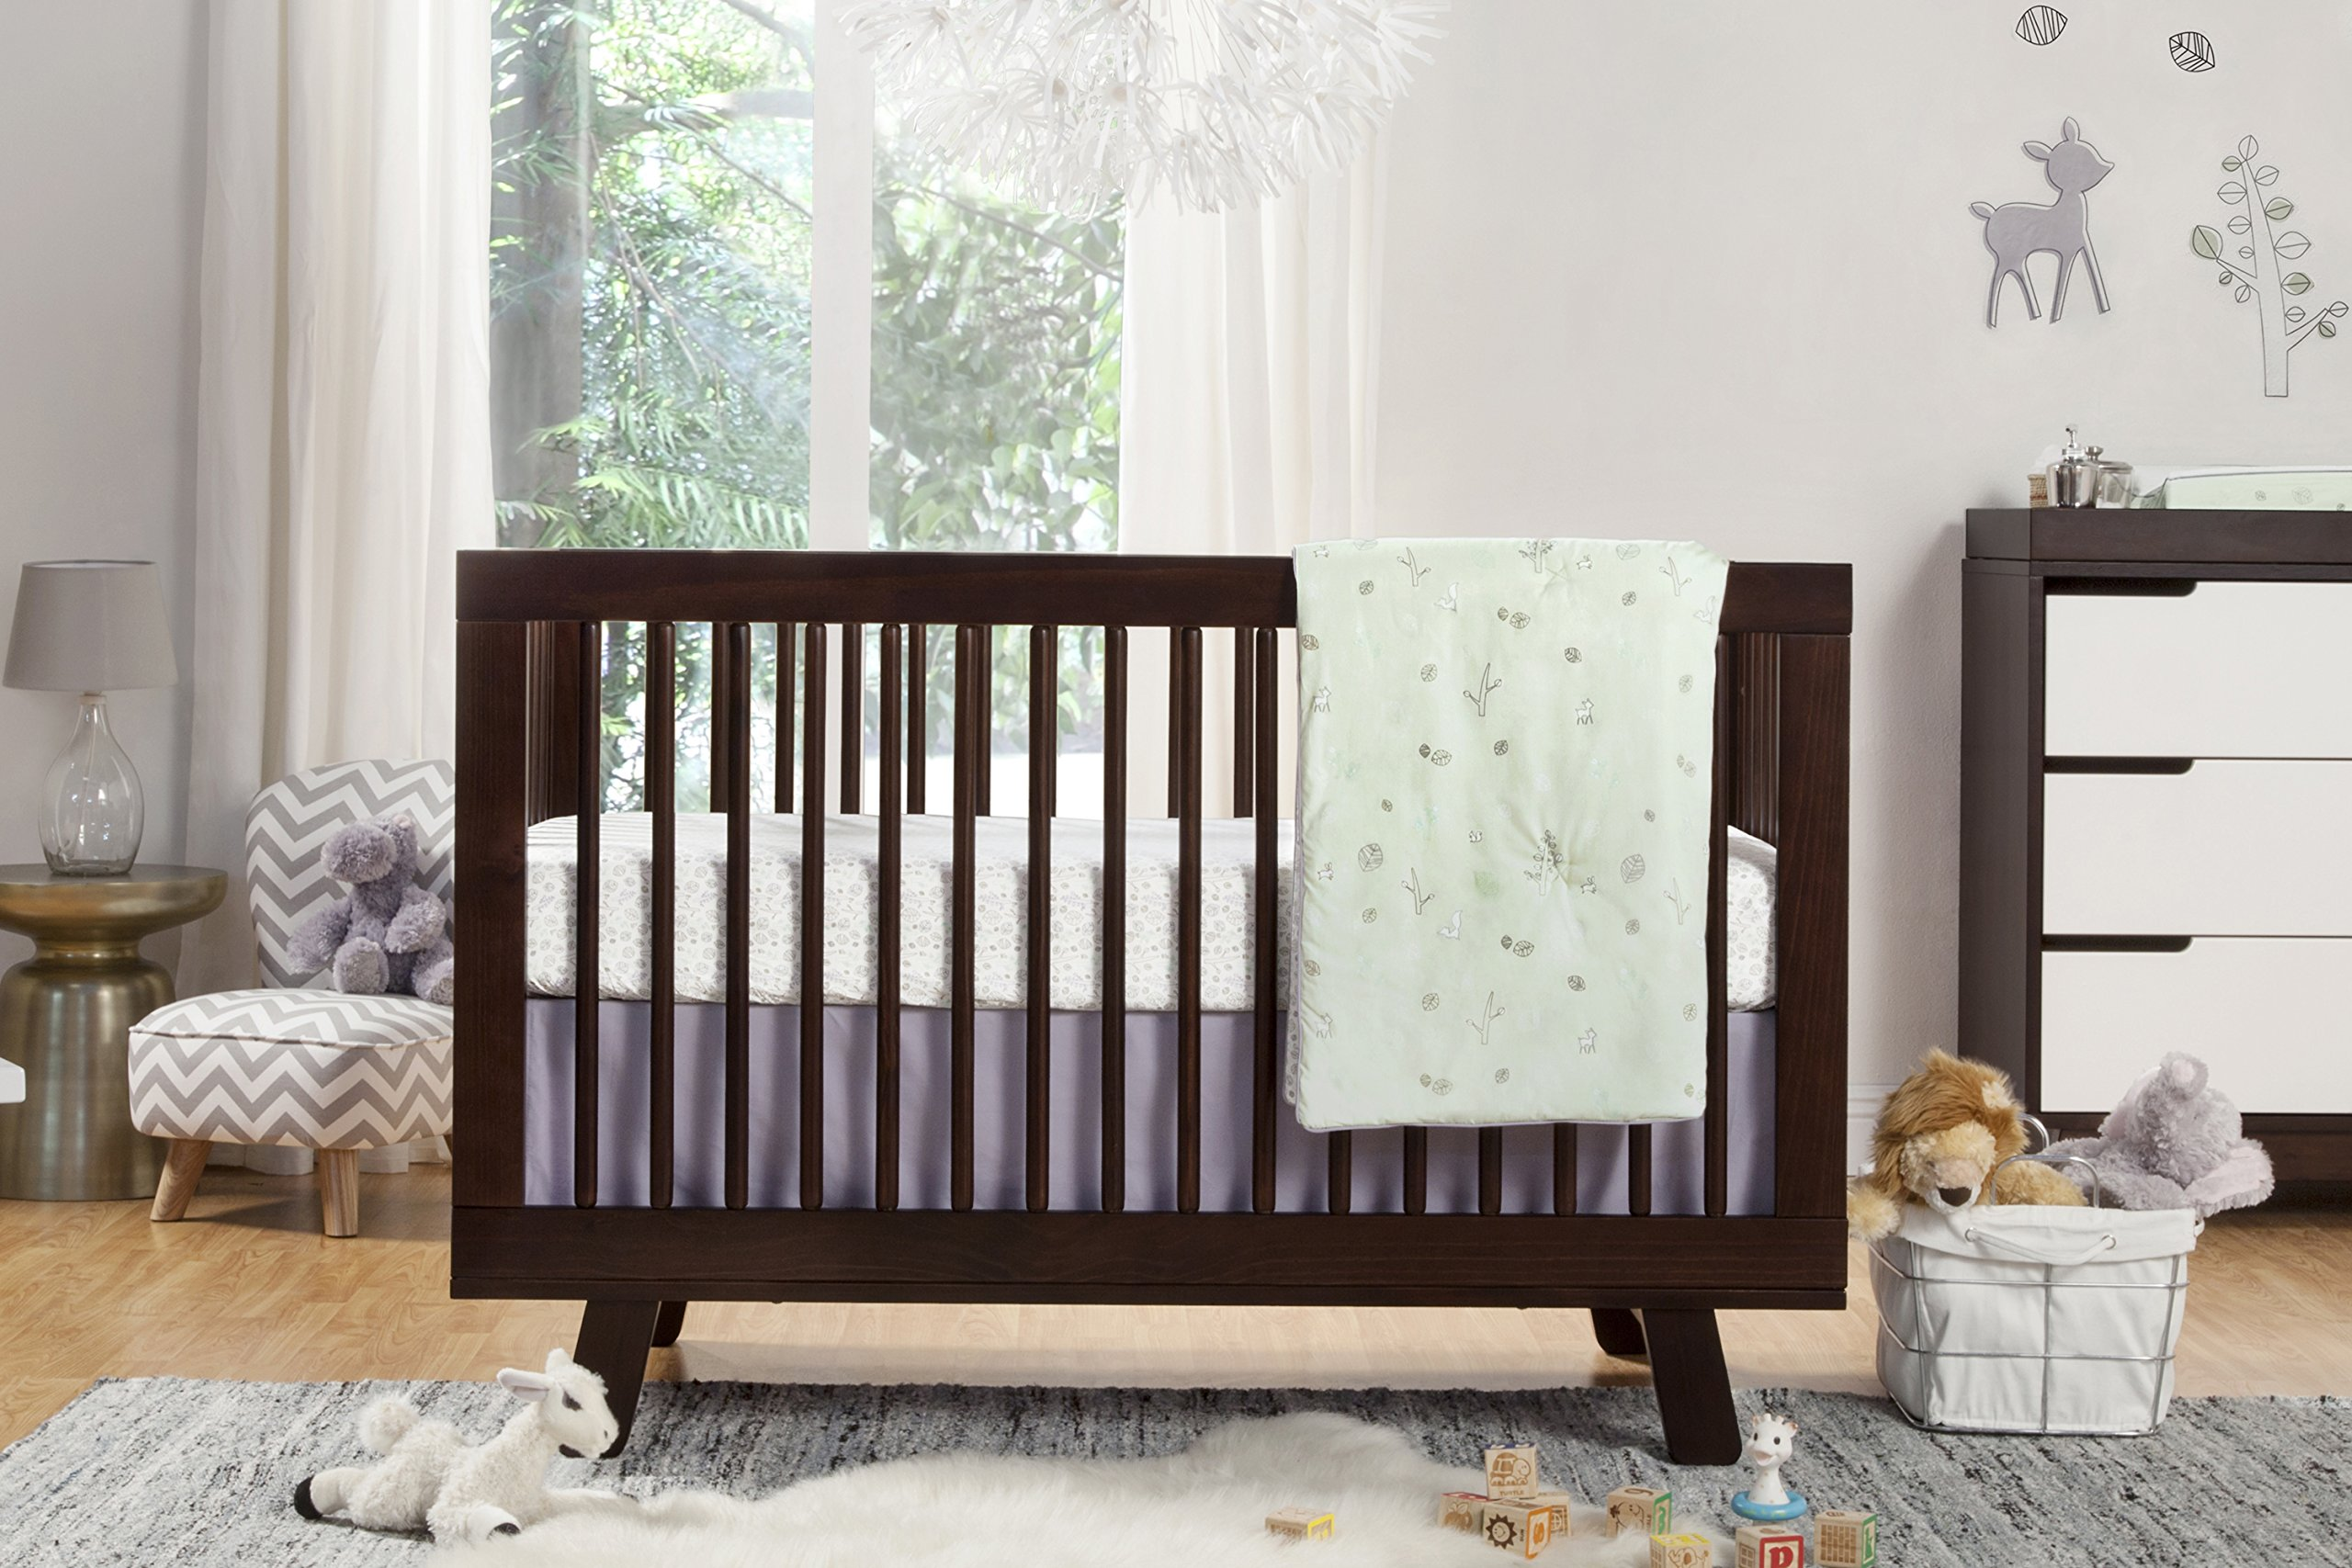 Babyletto 5-Piece Nursery Crib Bedding Set, Fitted Crib Sheet, Crib Skirt, Play Blanket, Contour Changing Pad Cover & Wall Decals, Tranquil Woods